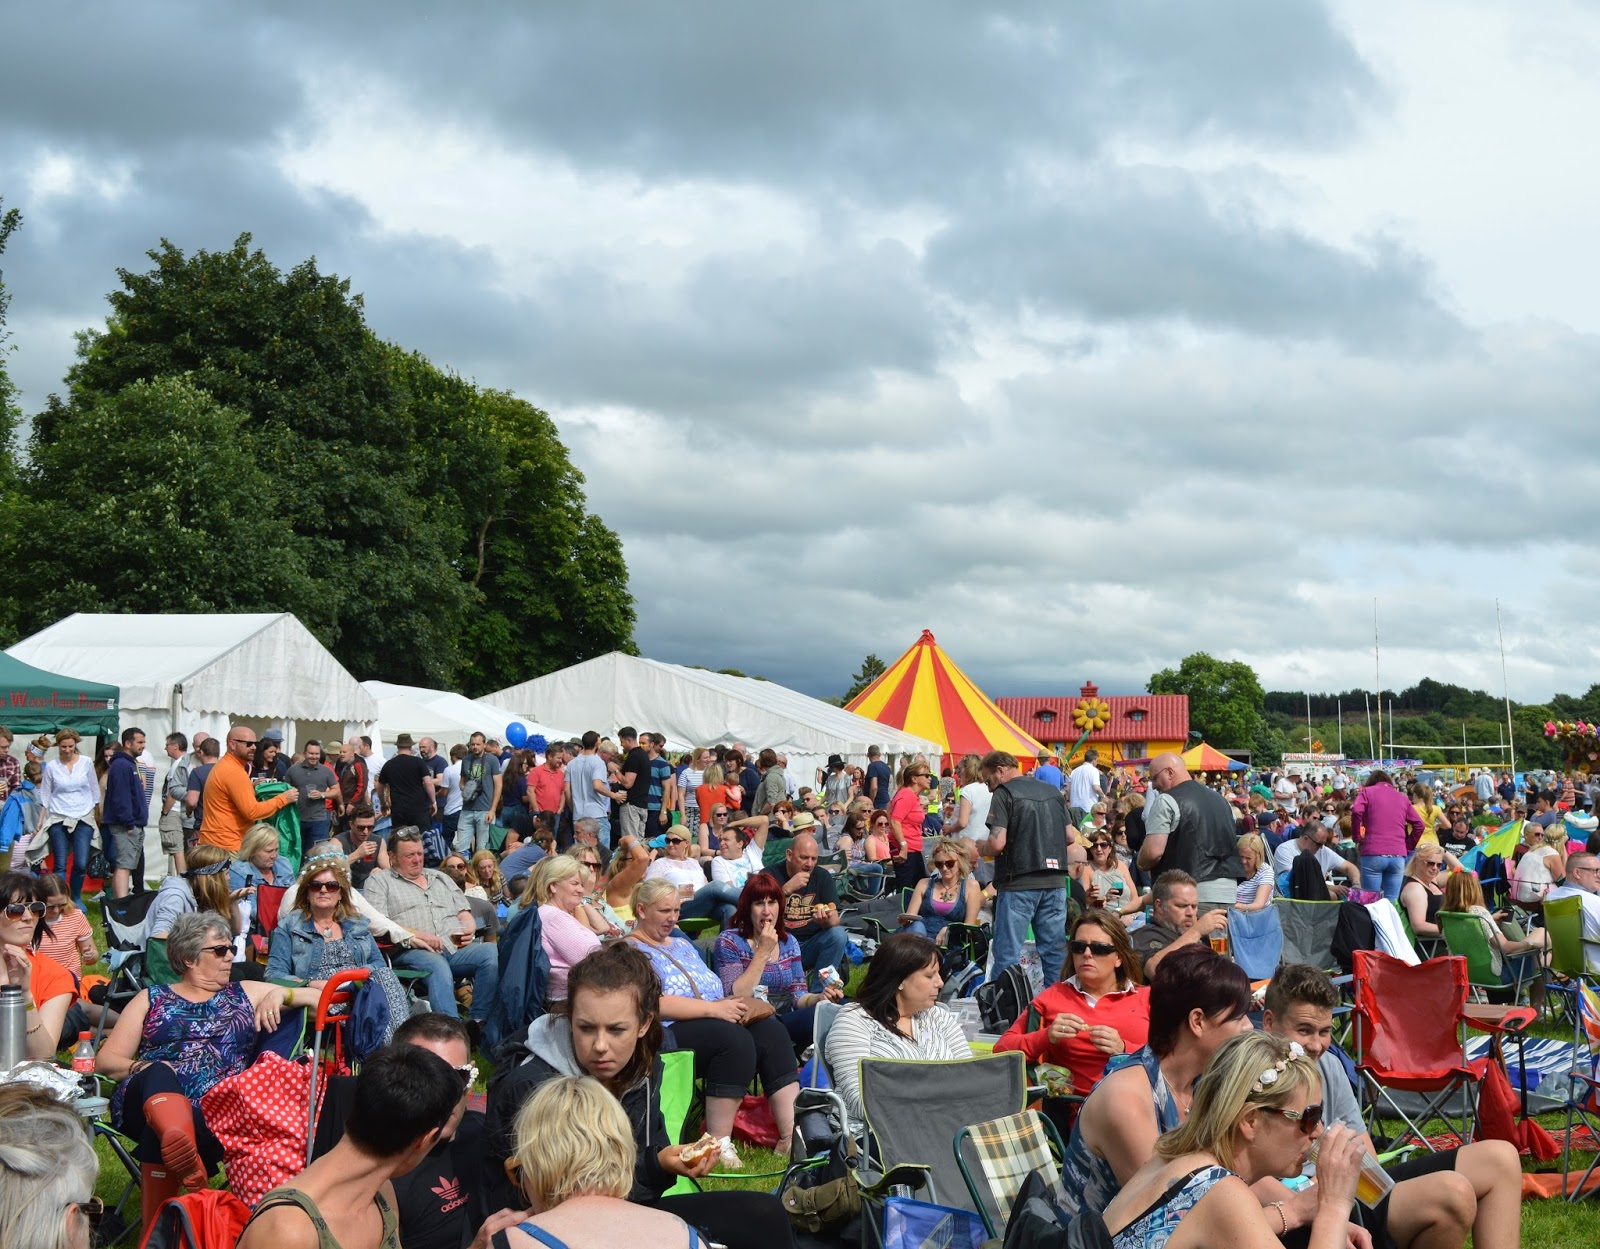 Corbridge Festival 2016 - A Review